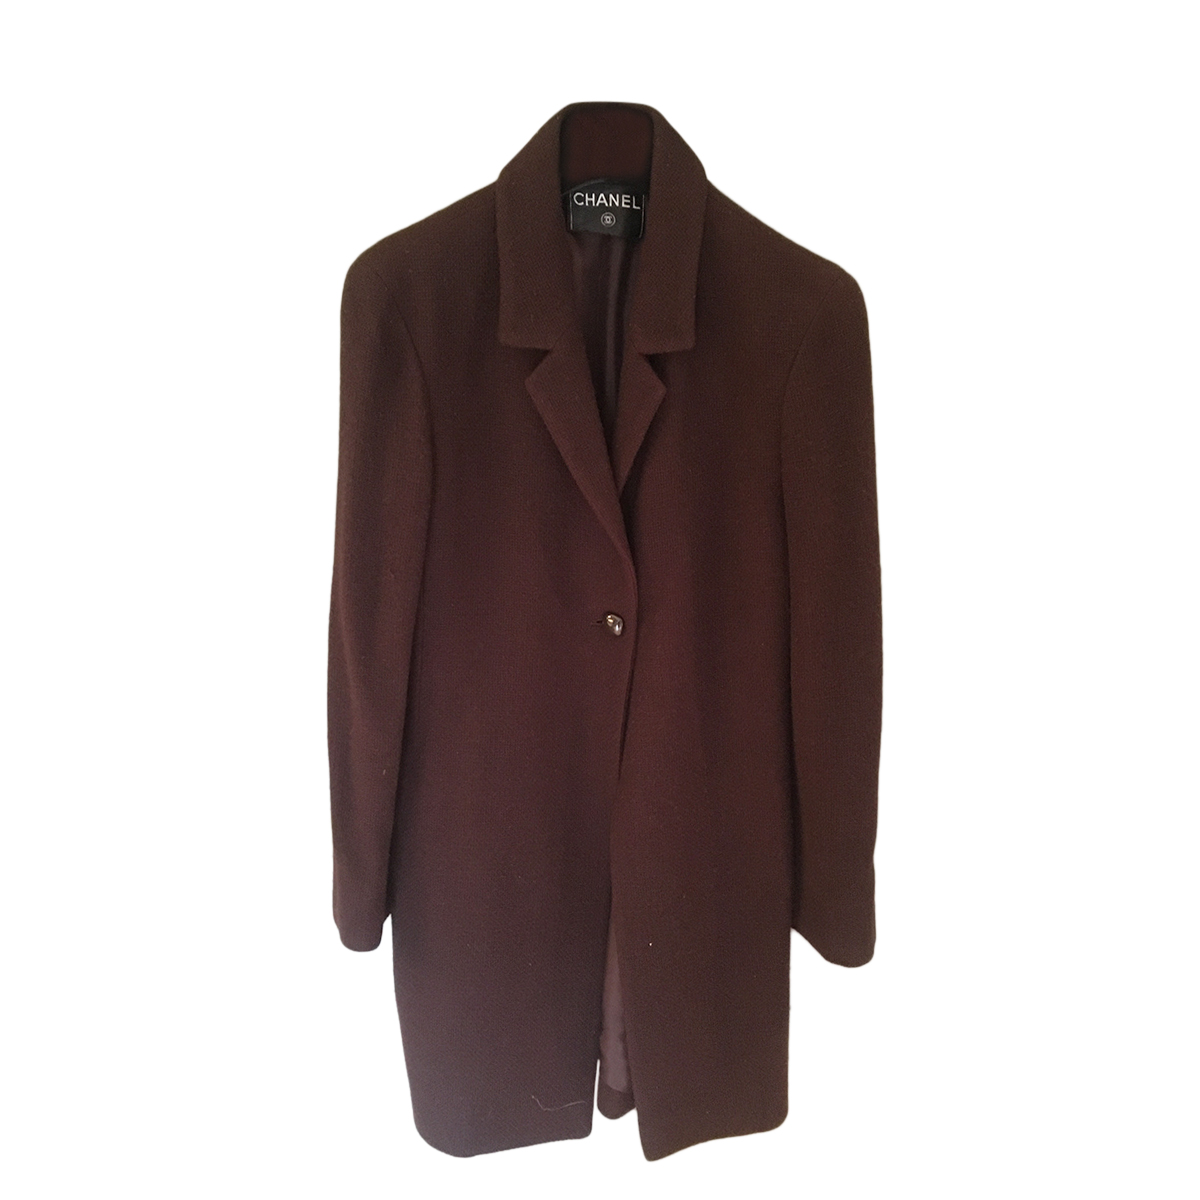 Chanel Brown Cashmere Tailored Coat